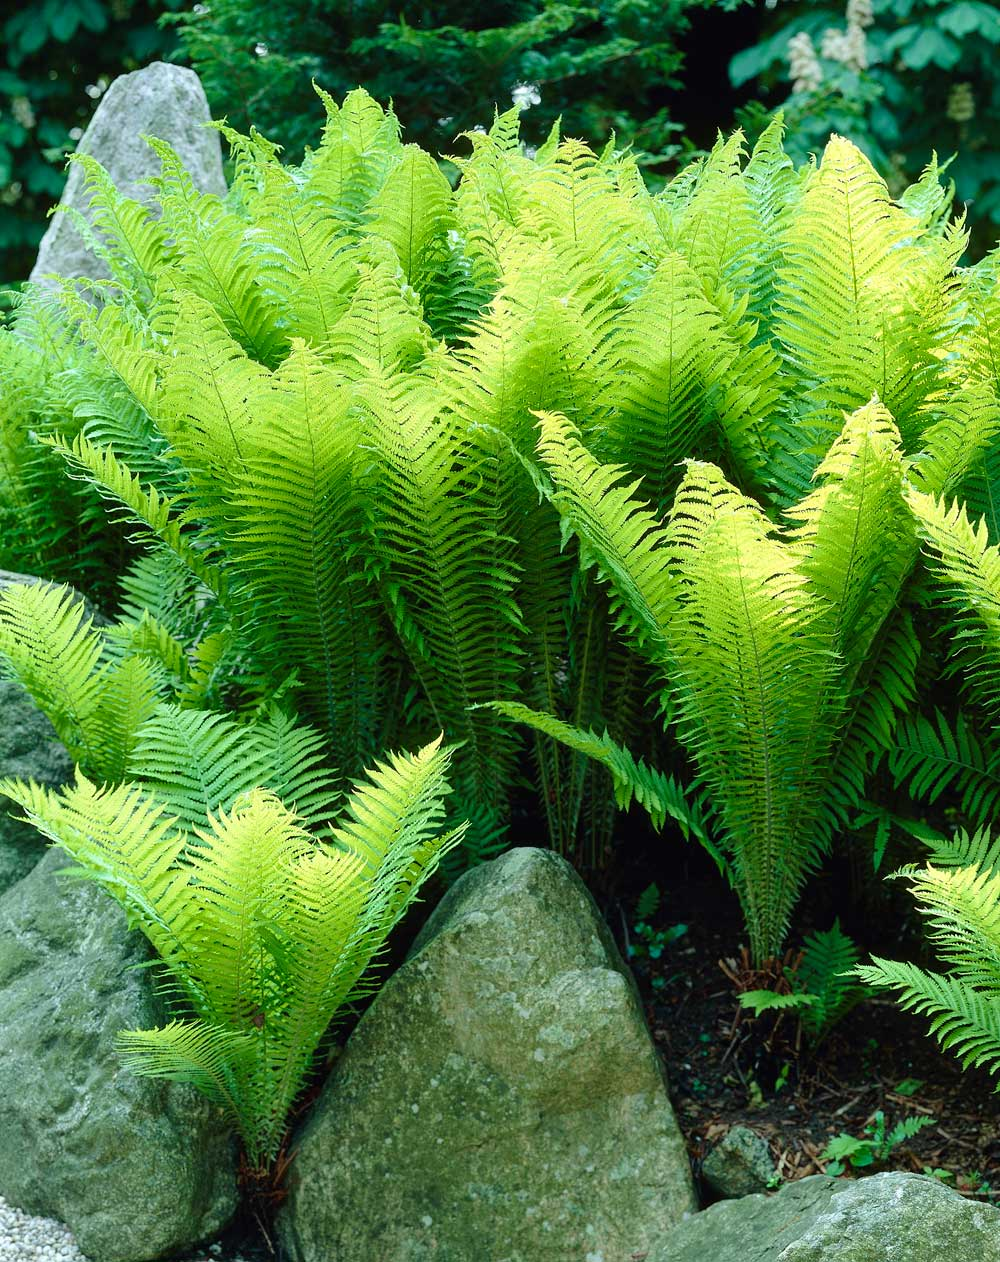 How to use ferns in your garden or landscape longfield gardens - Plants that dont need soil natures wonders ...